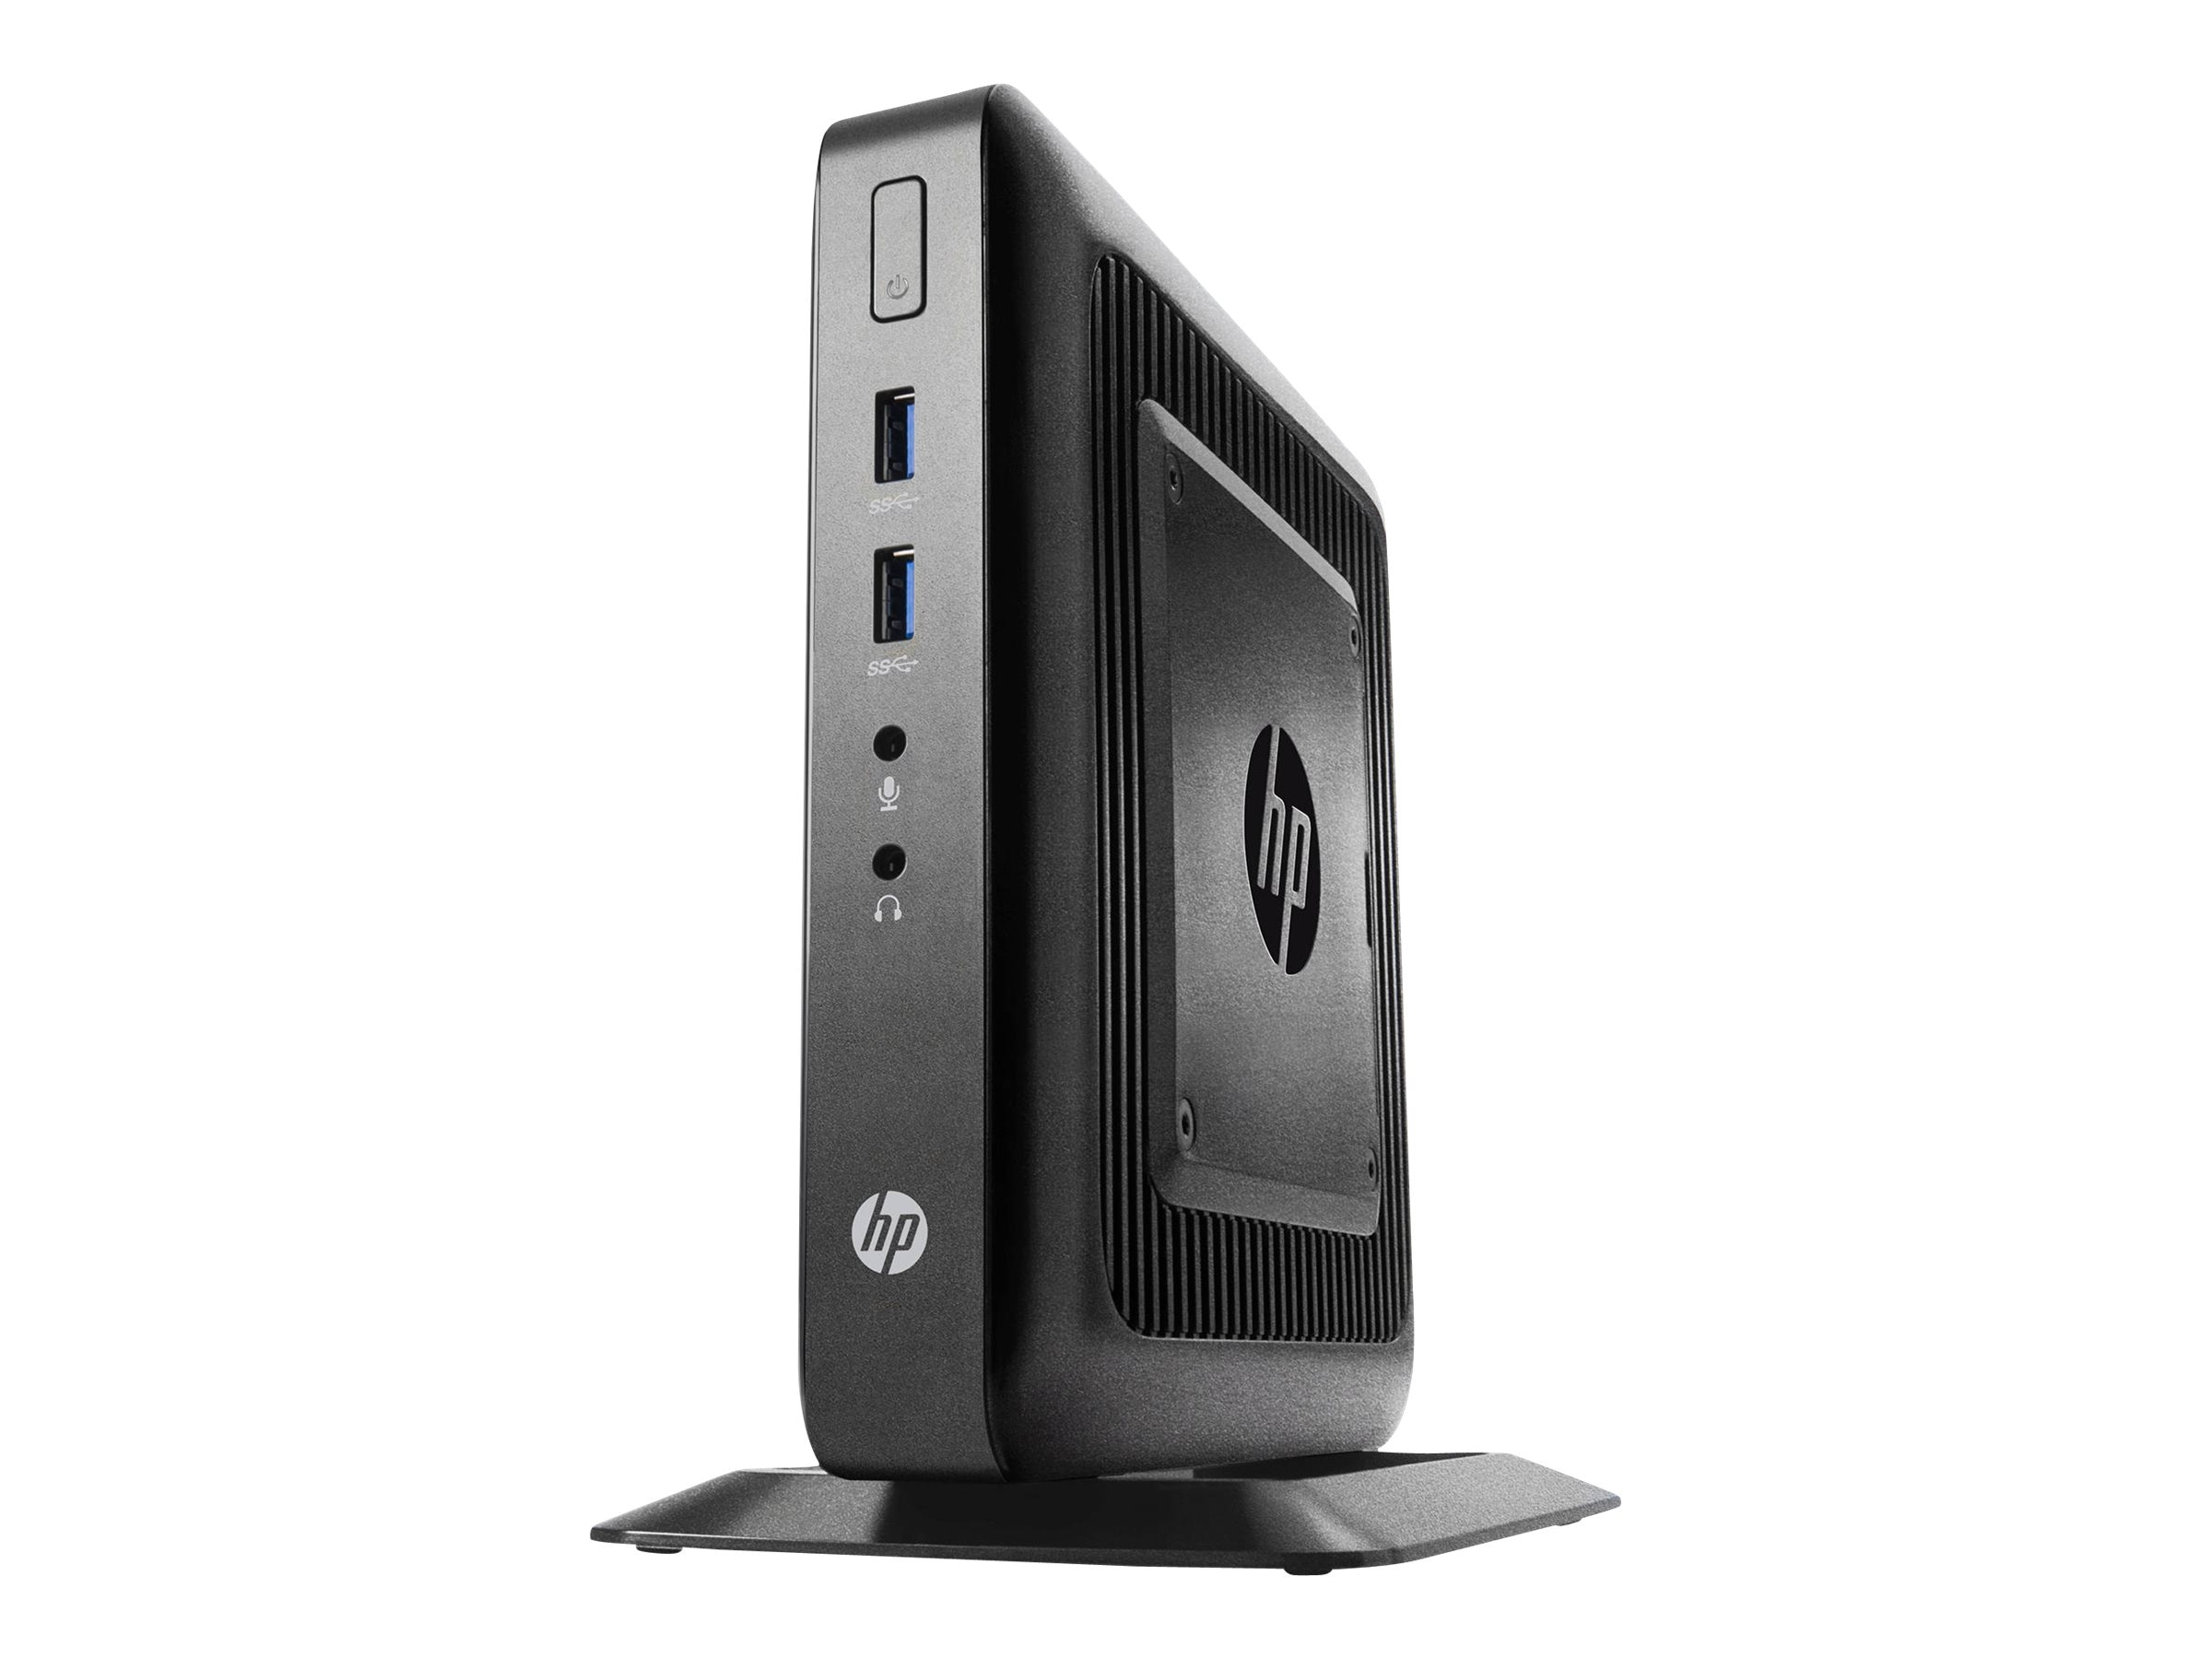 HP t520 Flexible Thin Client AMD DC GX-212JC 1.2GHz 4GB RAM 8GB Flash GbE agn BT SmartZero, J6D57UT, 24059091, Thin Client Hardware